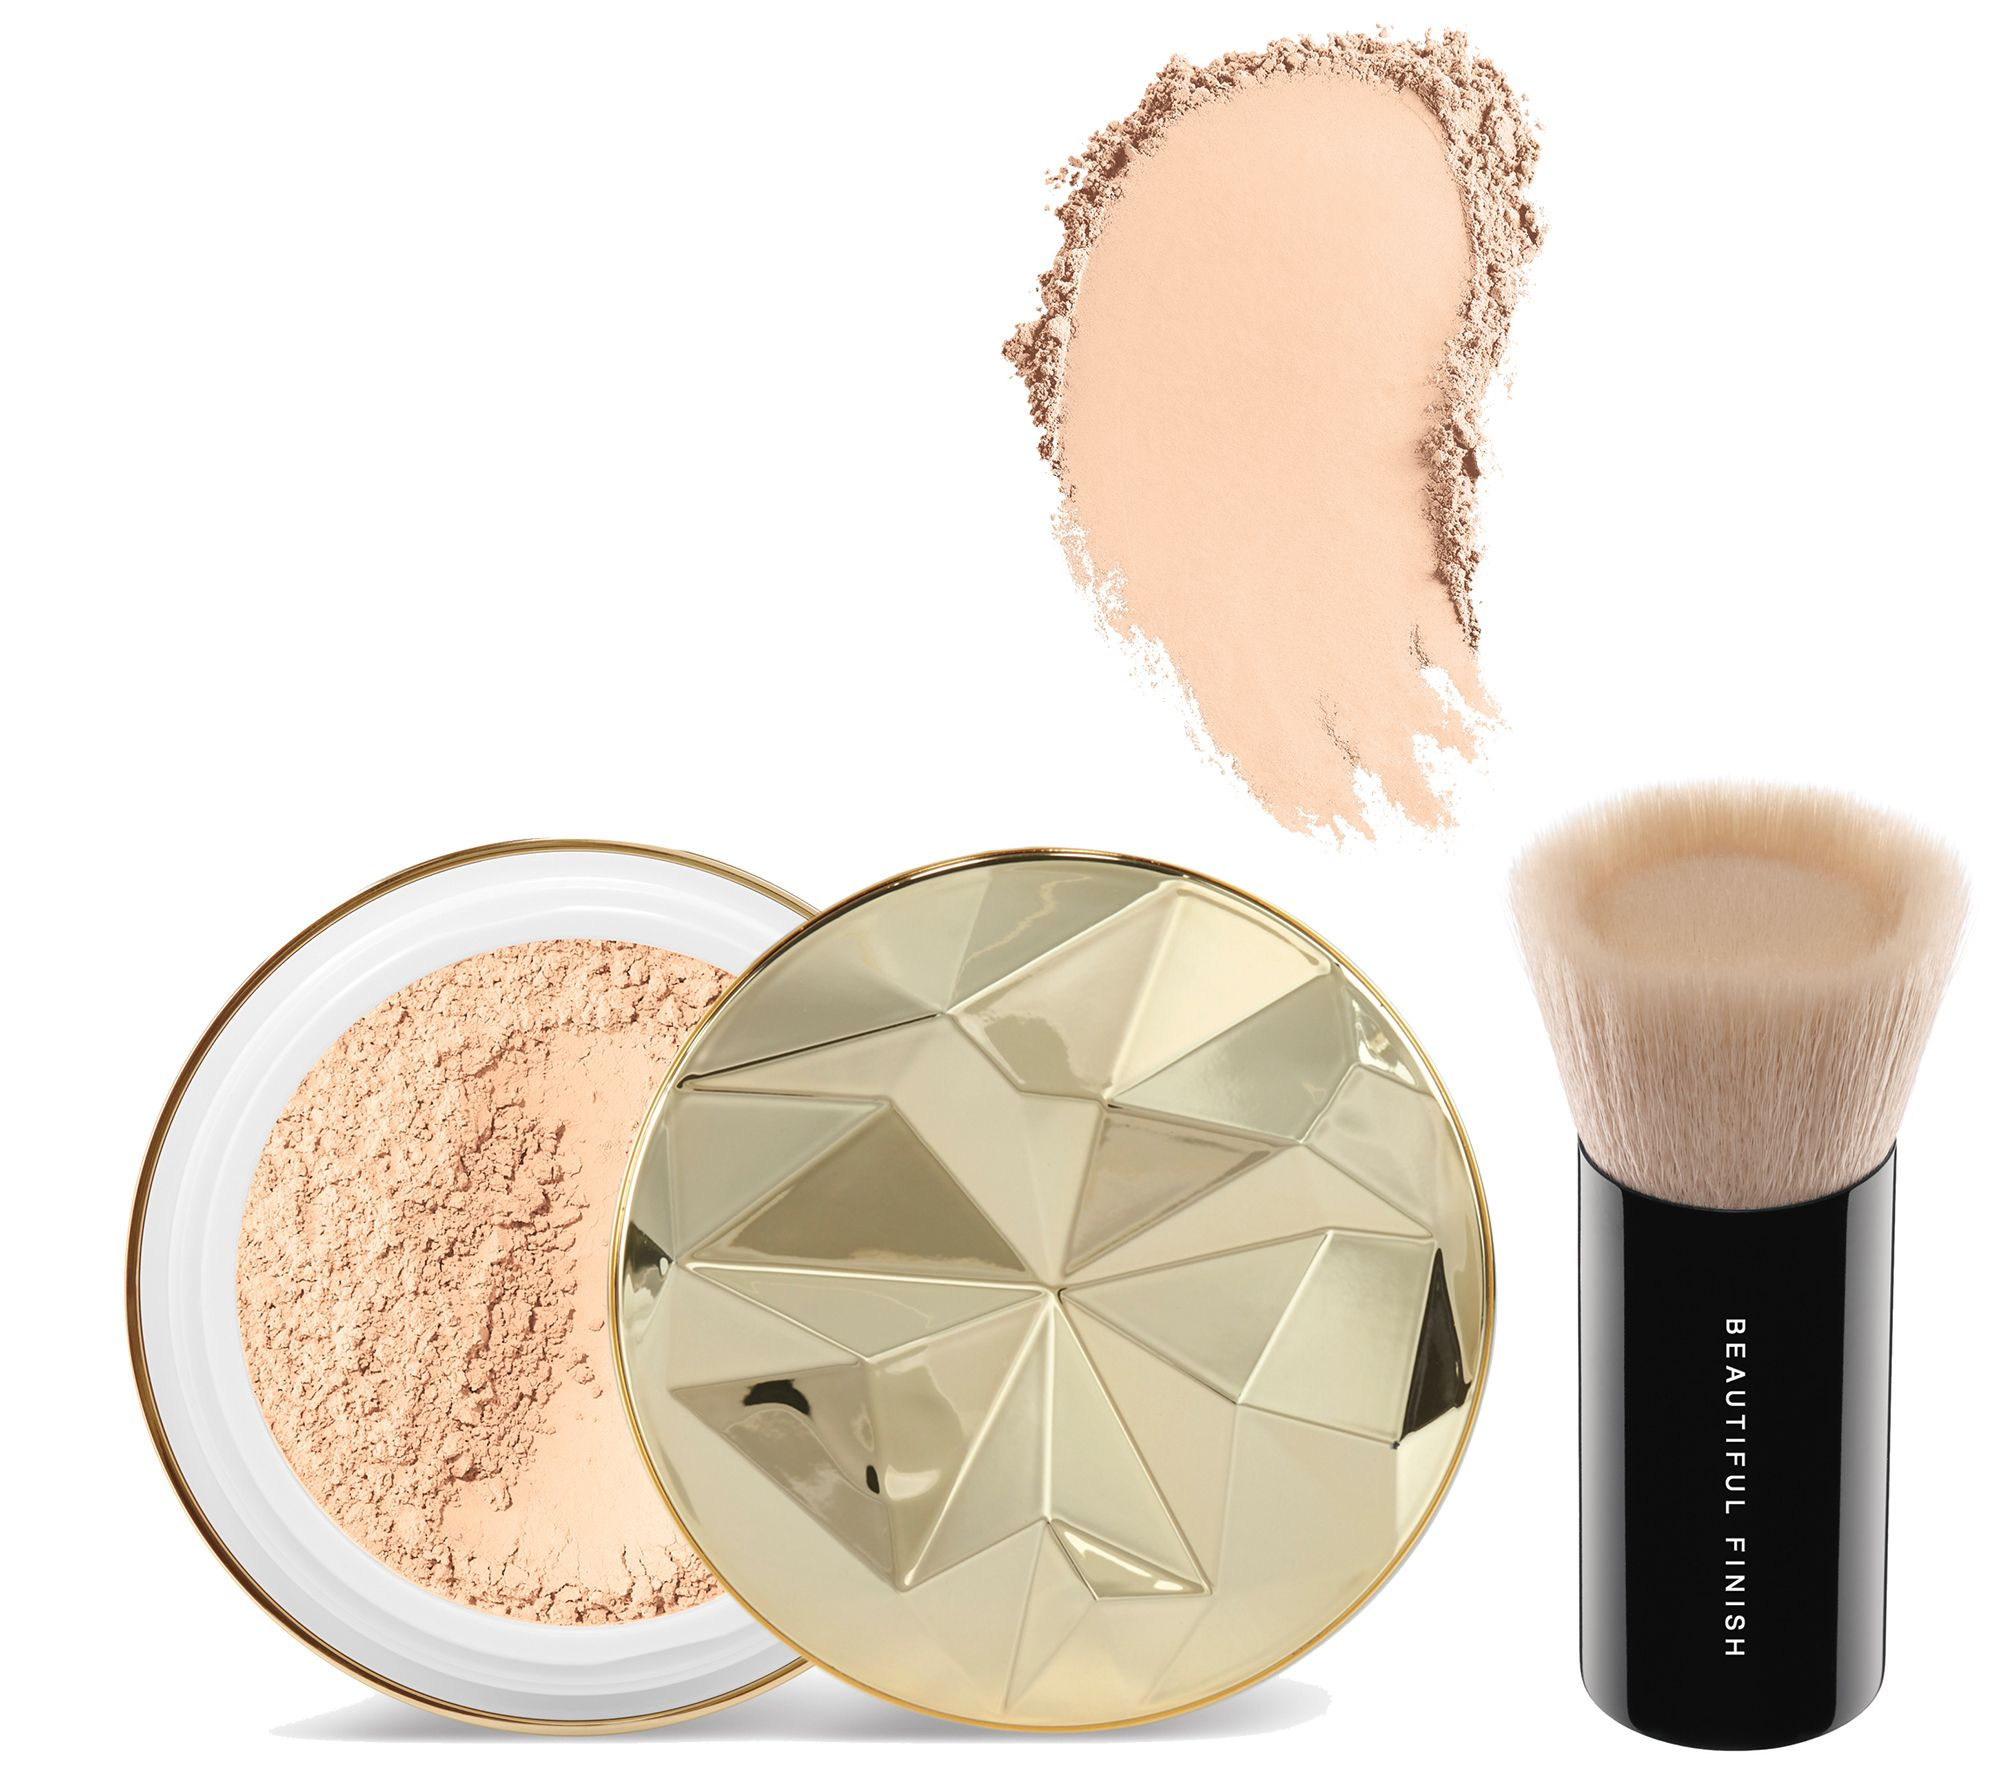 Buy bareMinerals Devotion Eye Color for Women, Ounce on green-host-demo.ga FREE SHIPPING on qualified orders.